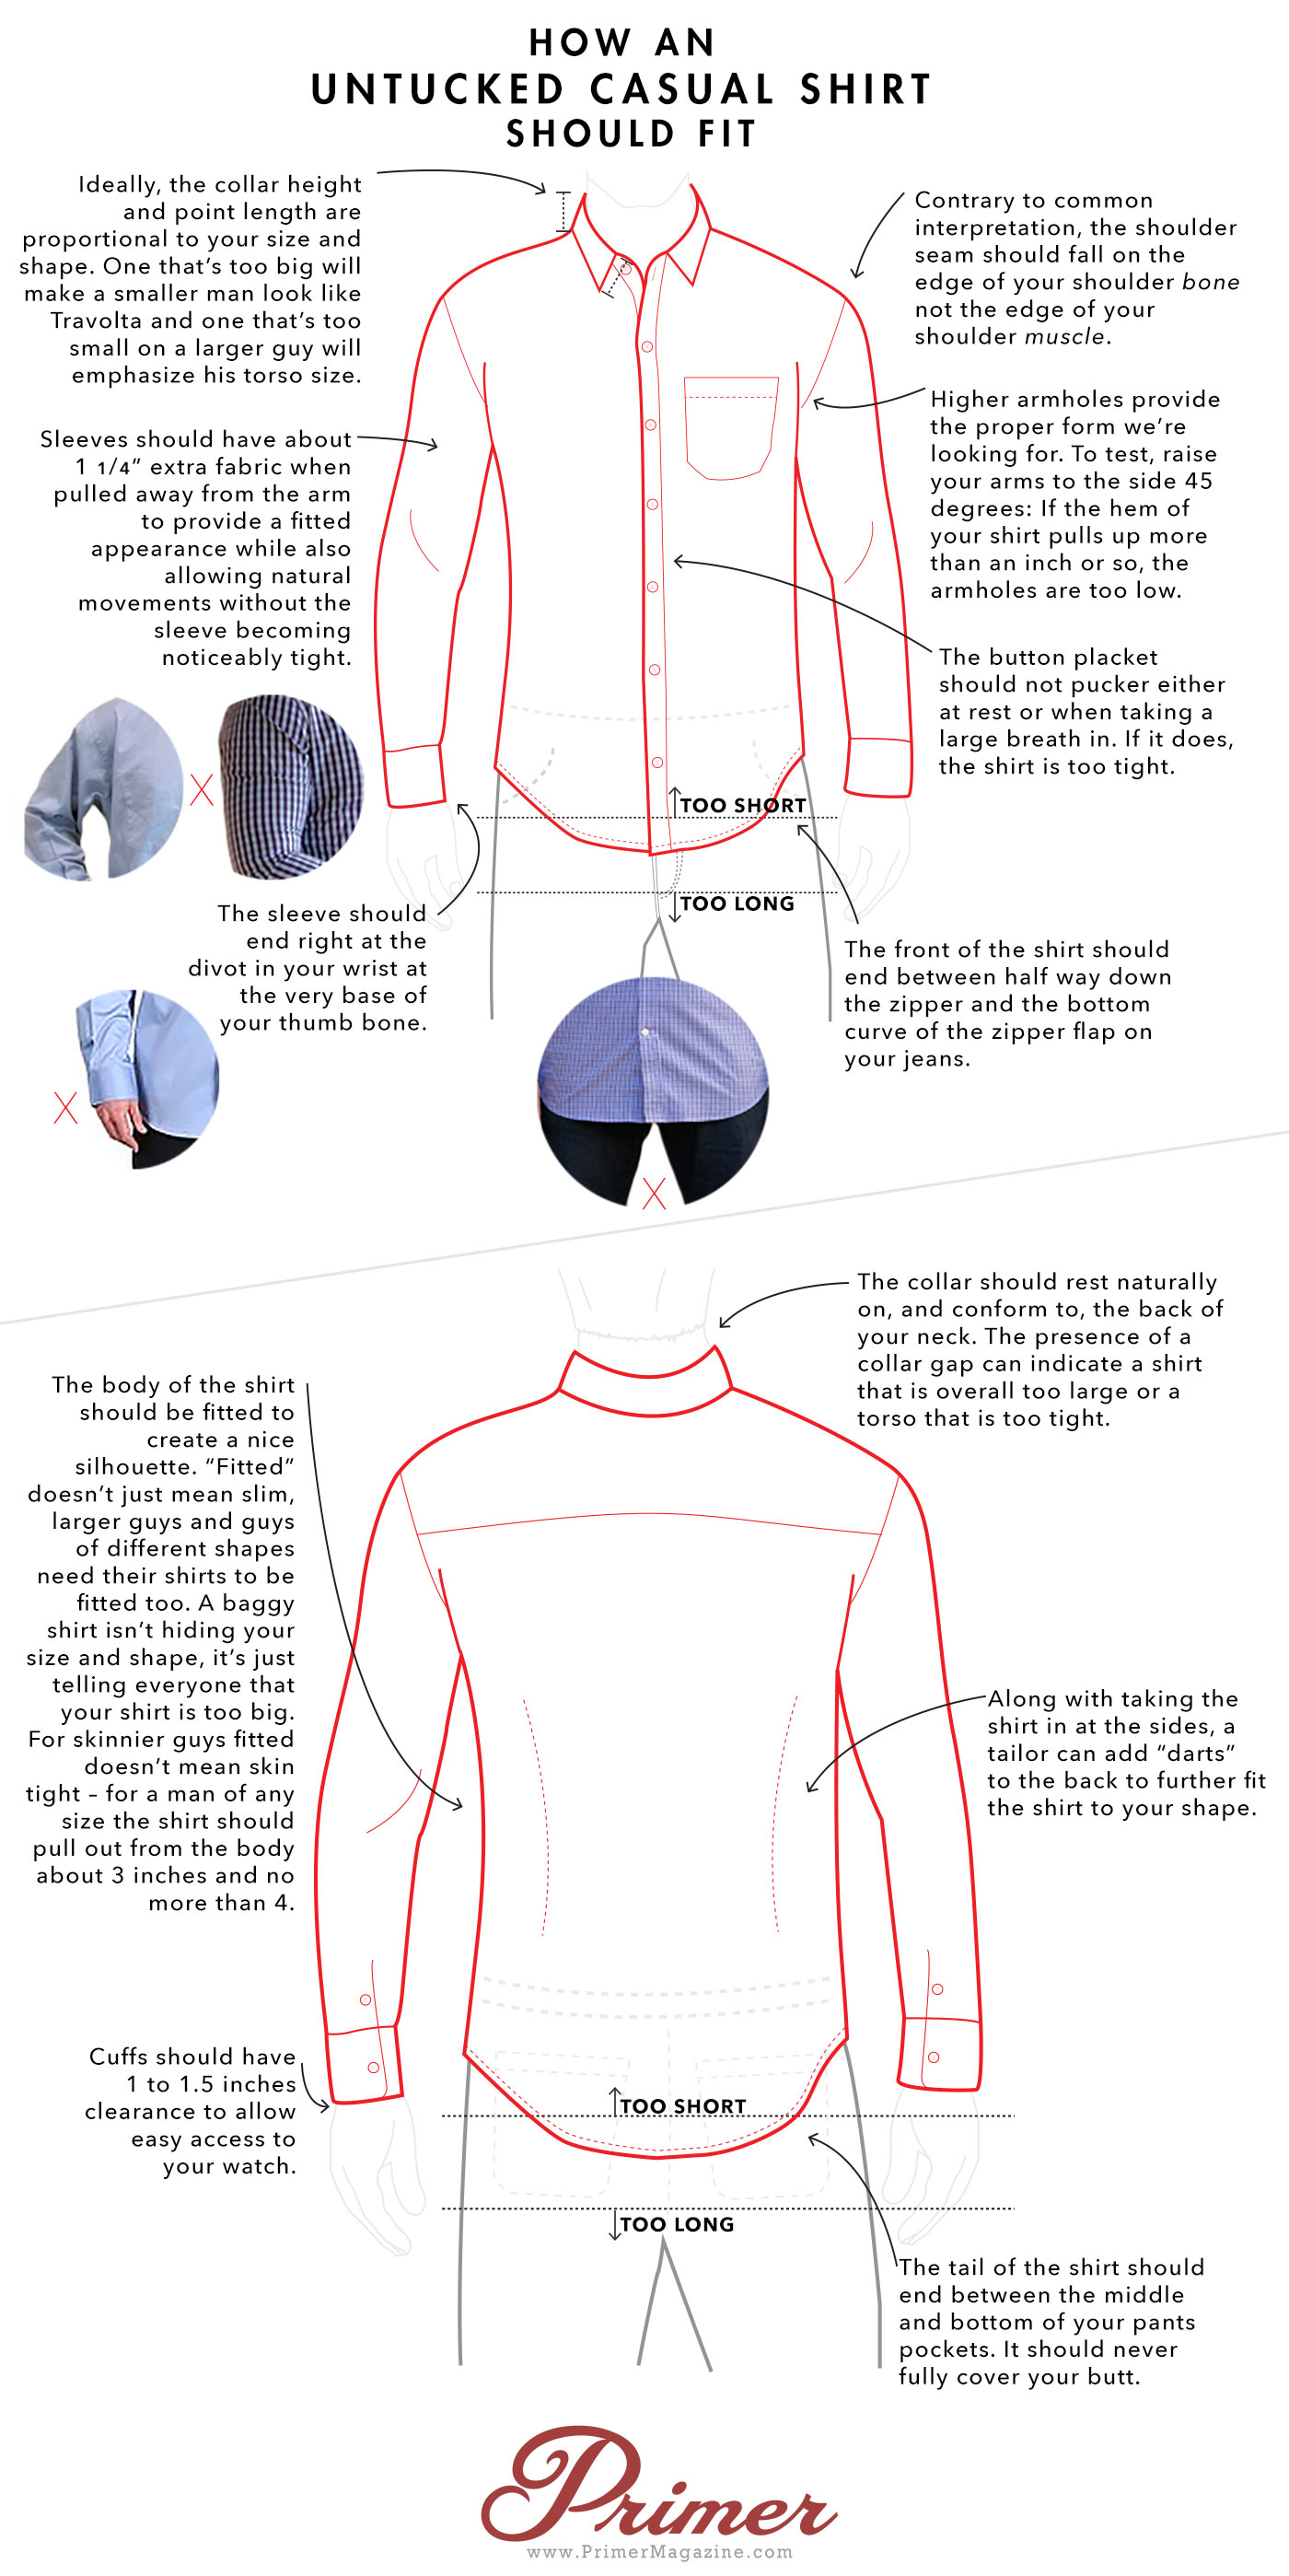 7a19684fb21 How an Untucked Casual Shirt Should Fit - A Visual Guide